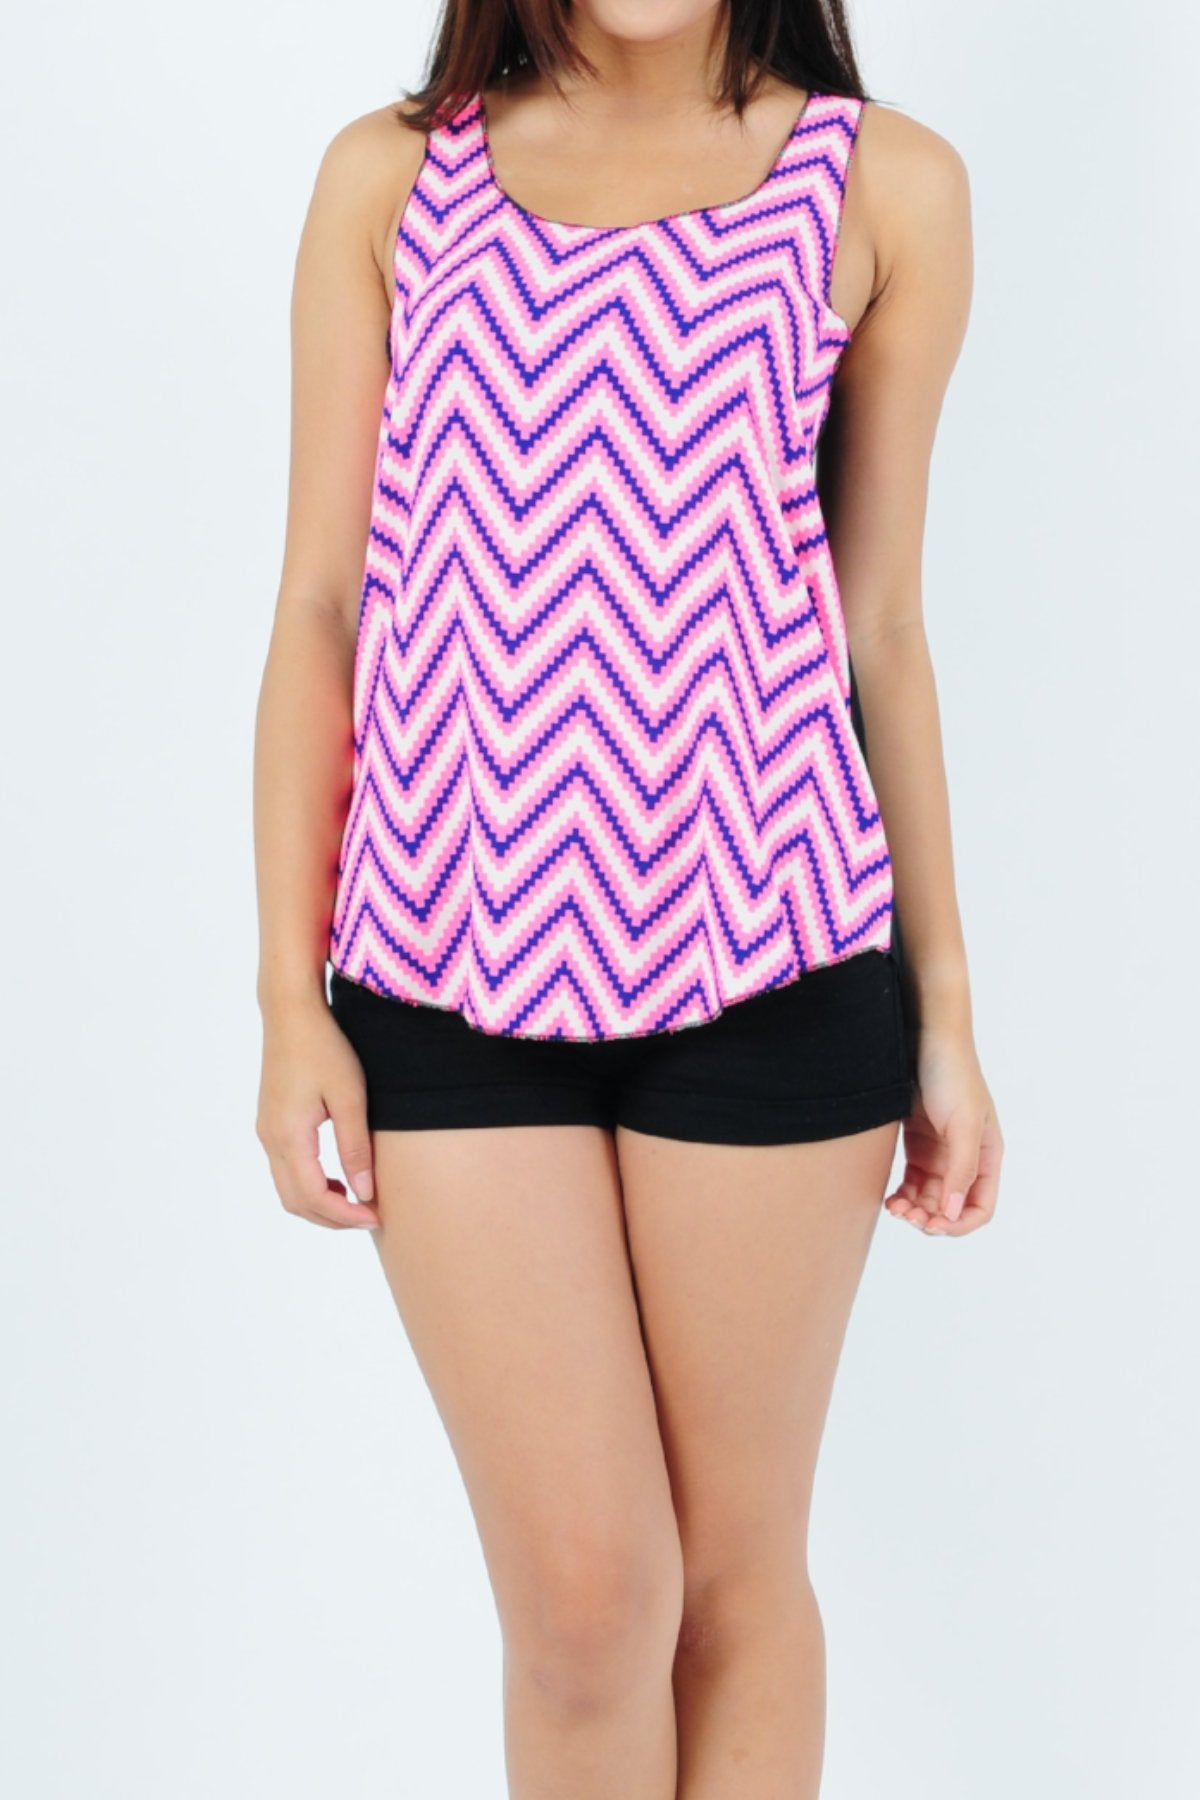 Basic Tank Top Trio ZigZag in White